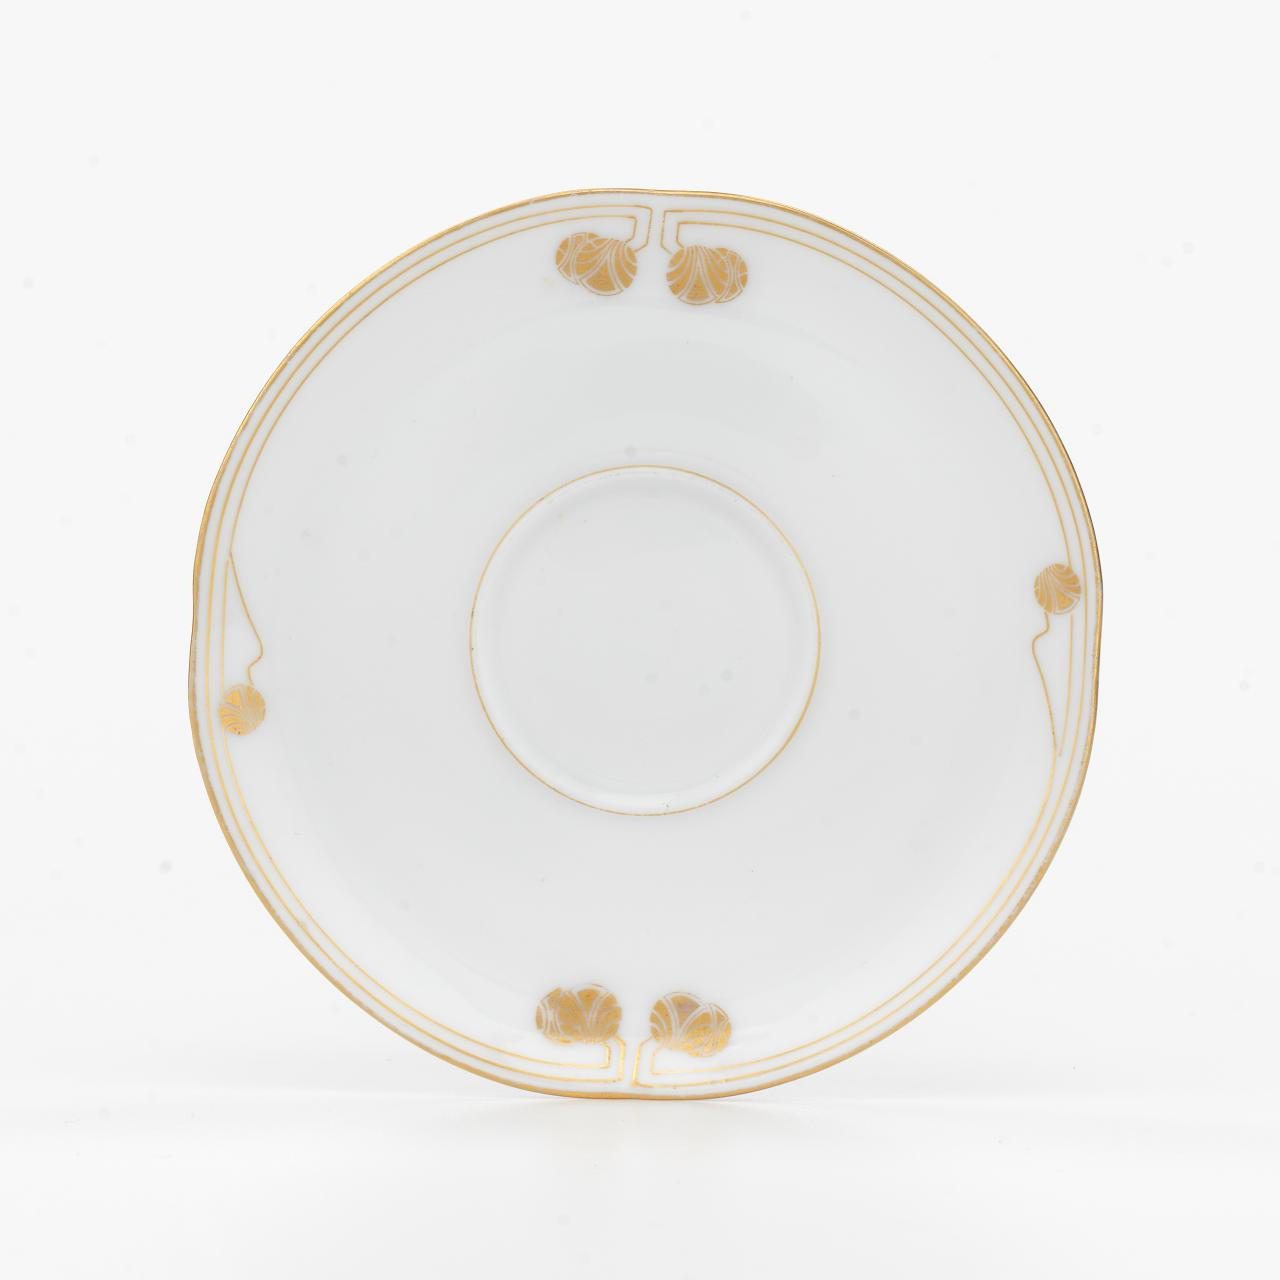 Modern, saucer for a mocha cup